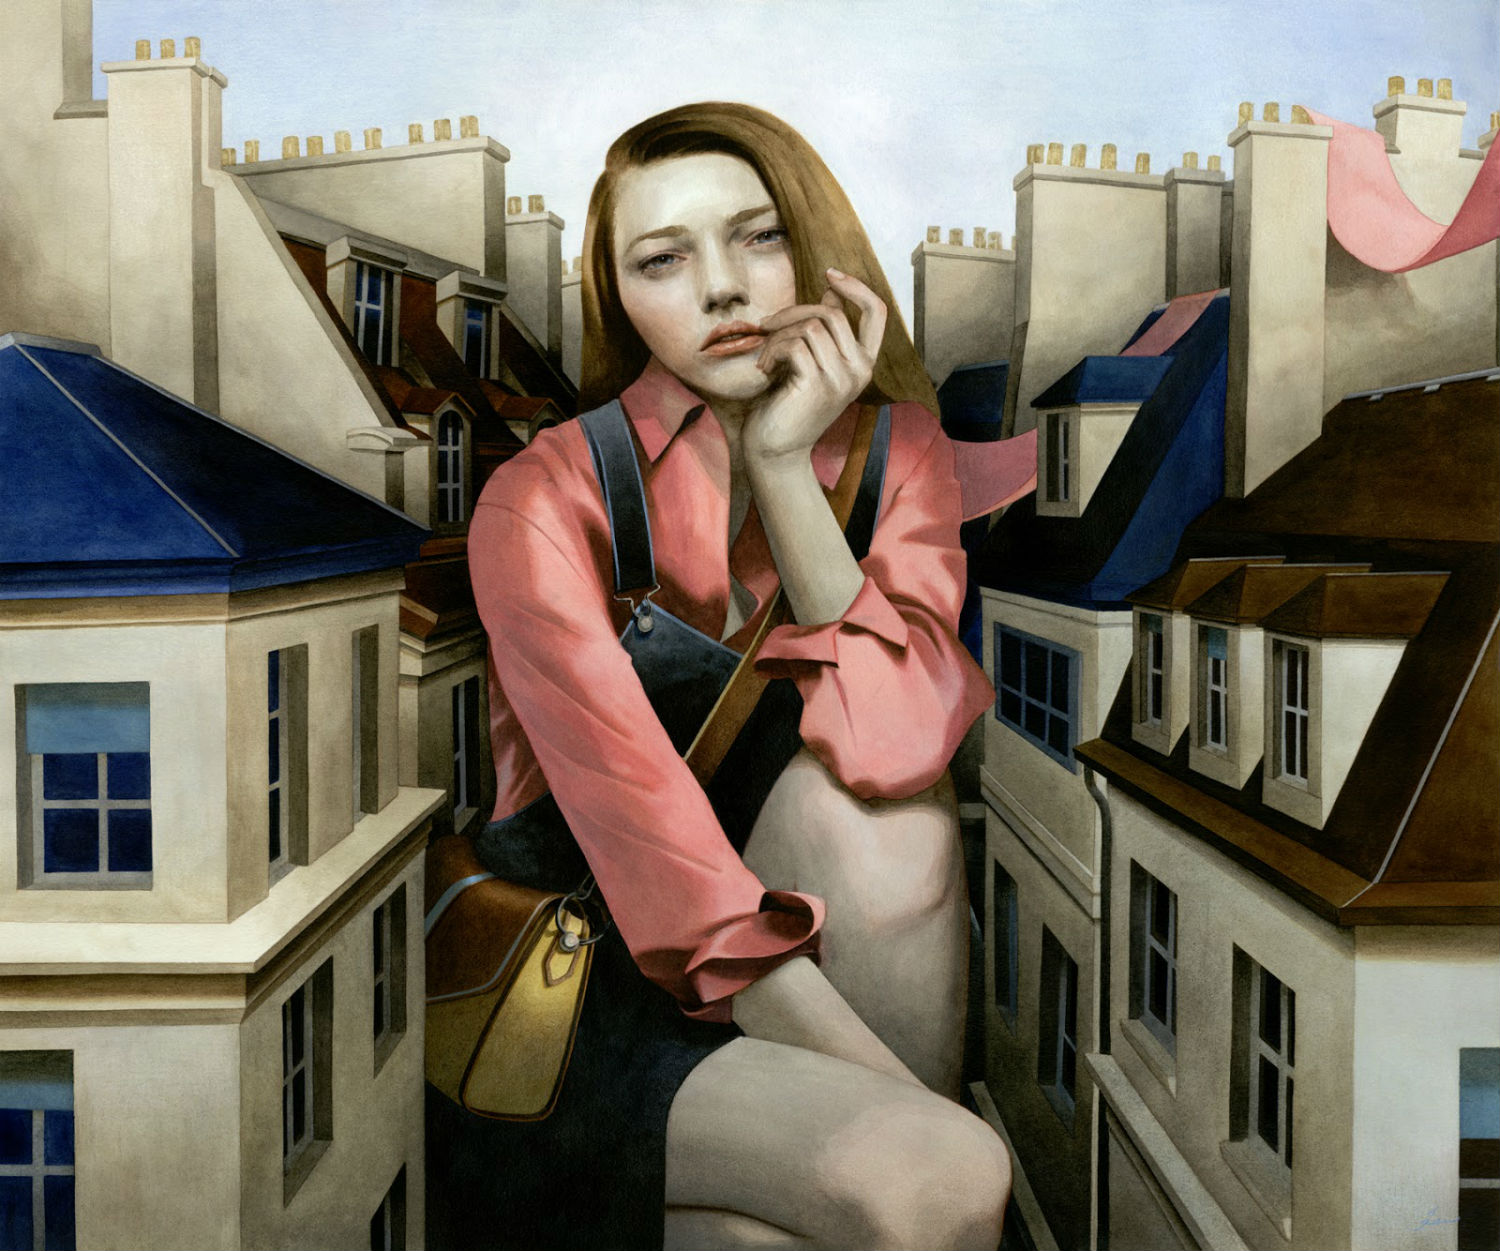 tran nguyen girl pink buildings